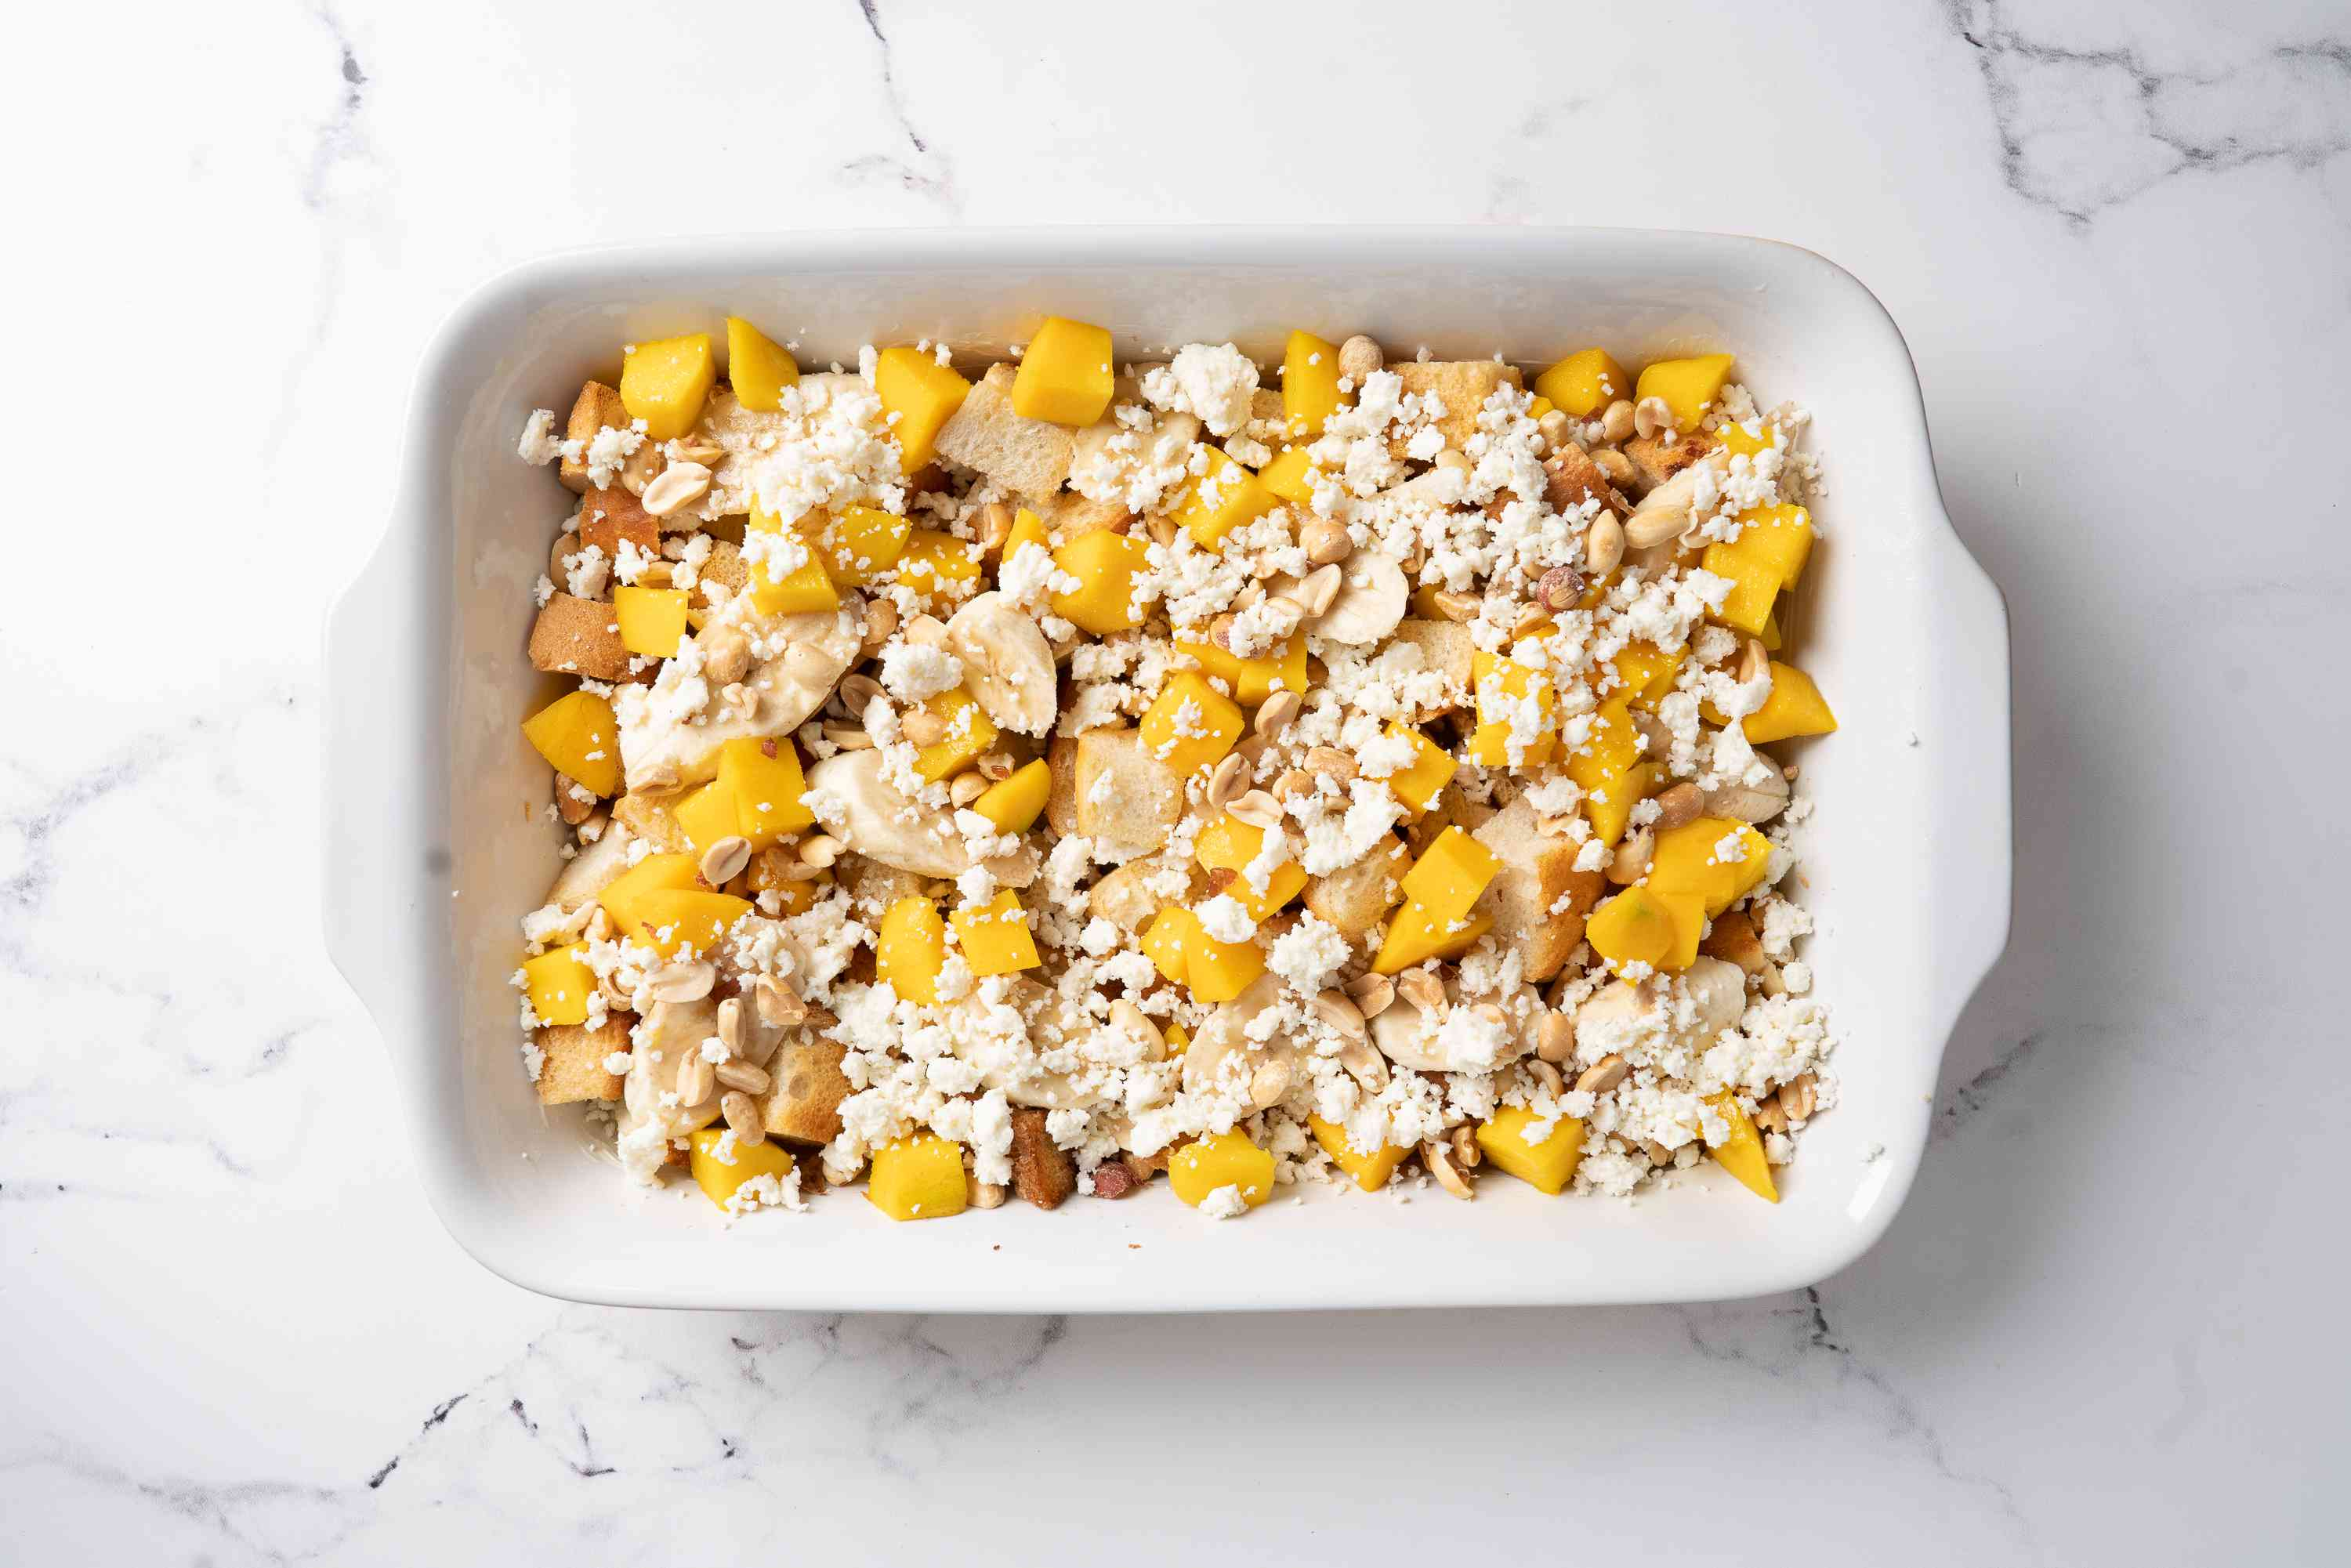 Bread in a casserole dish topped with fruit, cheese, and nuts